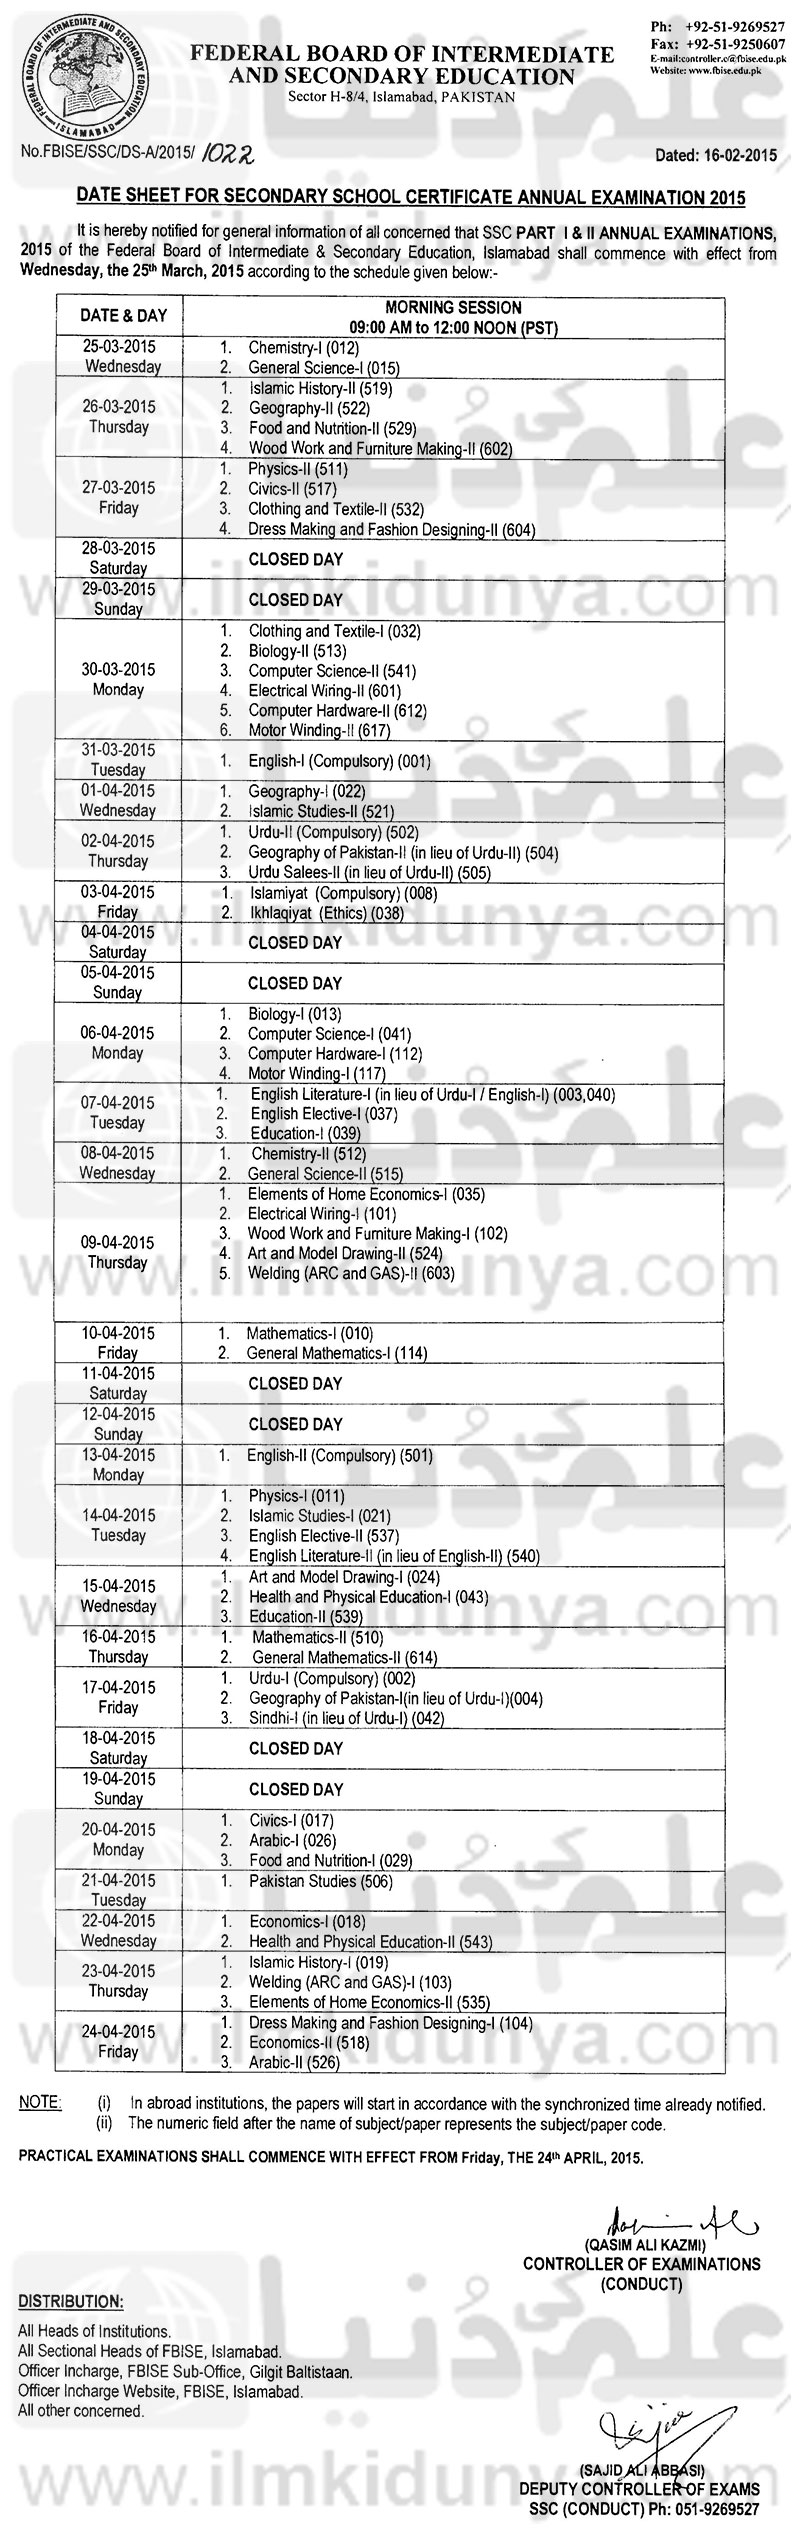 BISE Federal Board Matric Date Sheets 2015